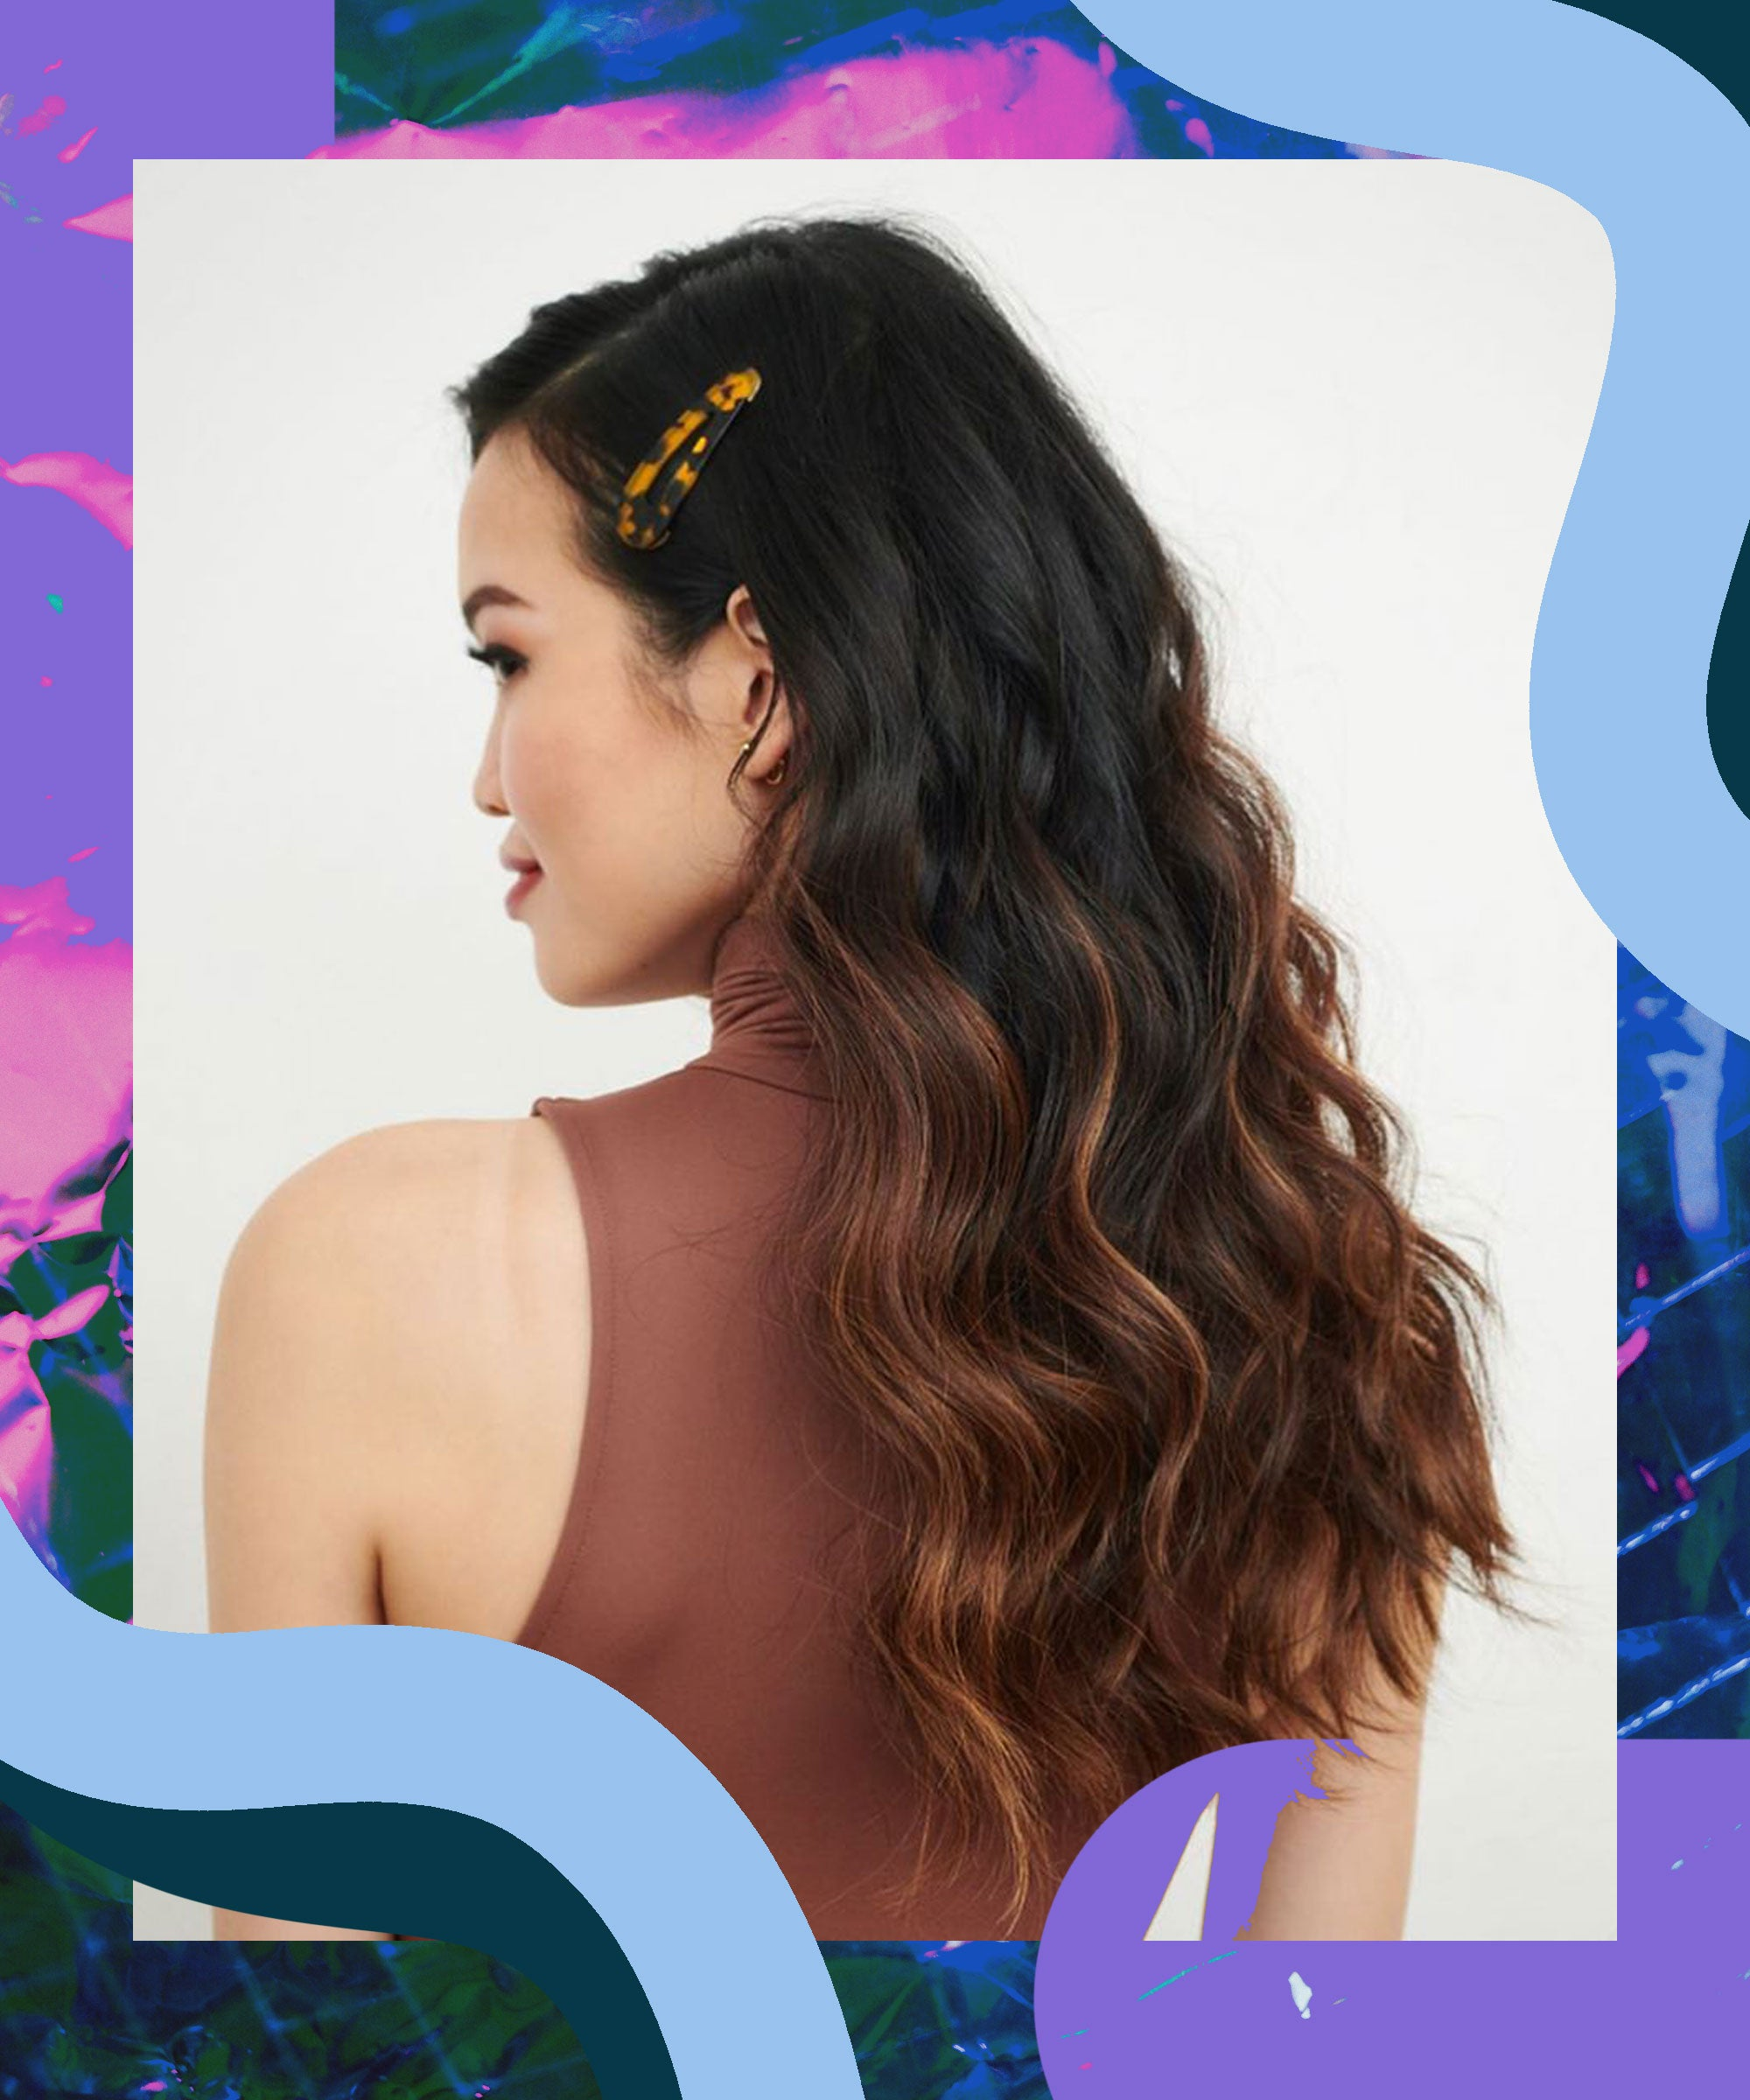 Trendy Hairstyles To Inspire Your Looks In April